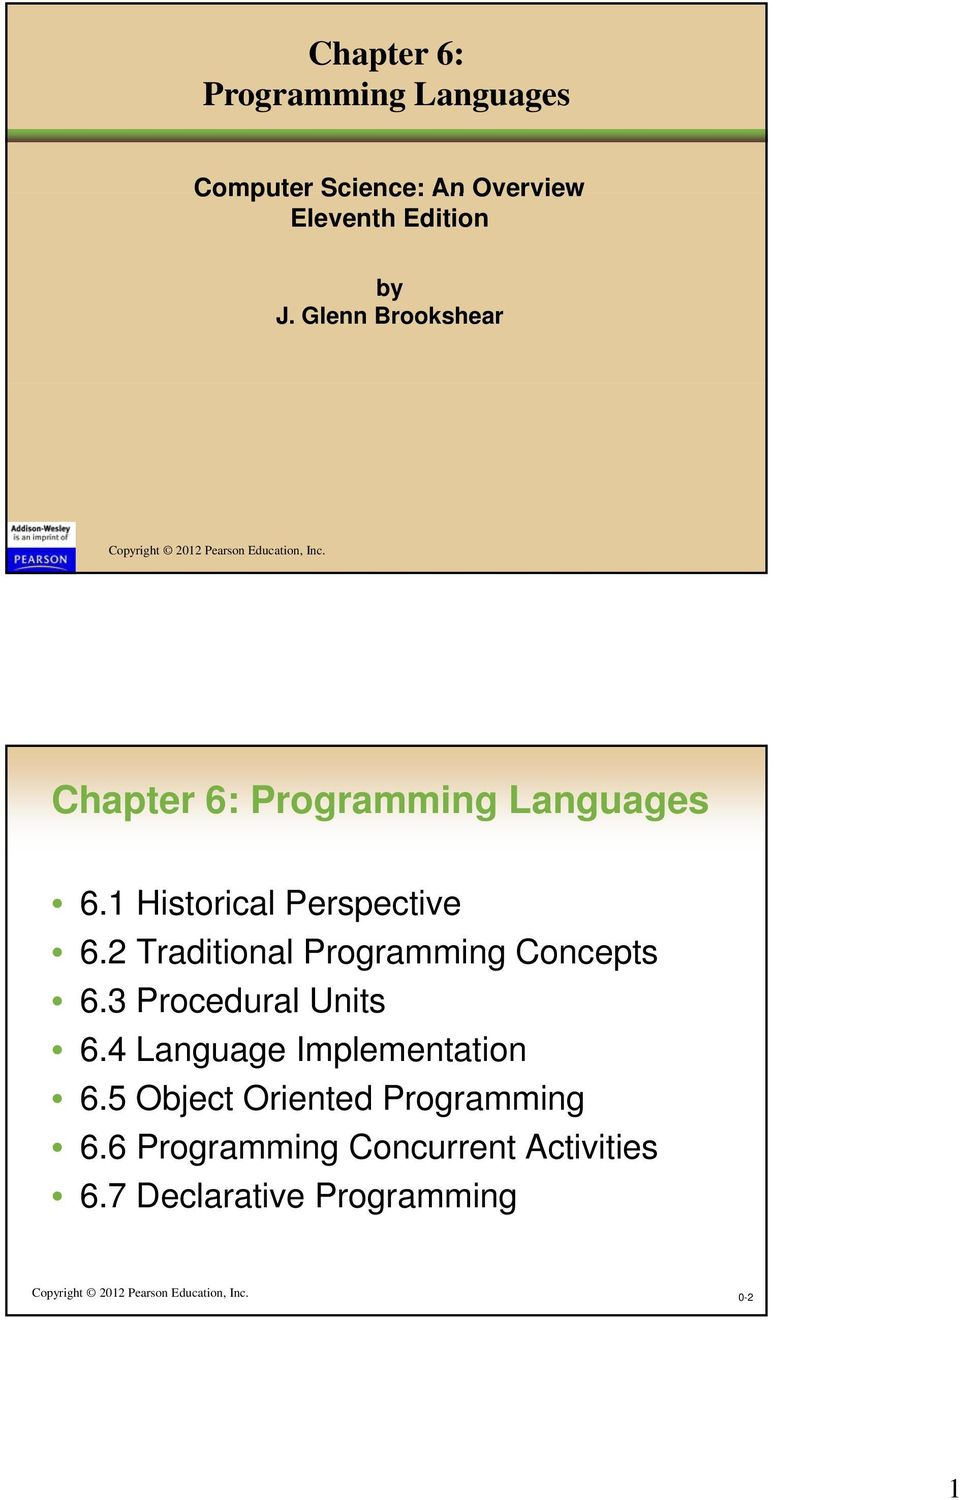 1 Historical Perspective 6.2 Traditional Programming Concepts 6.3 Procedural Units 6.